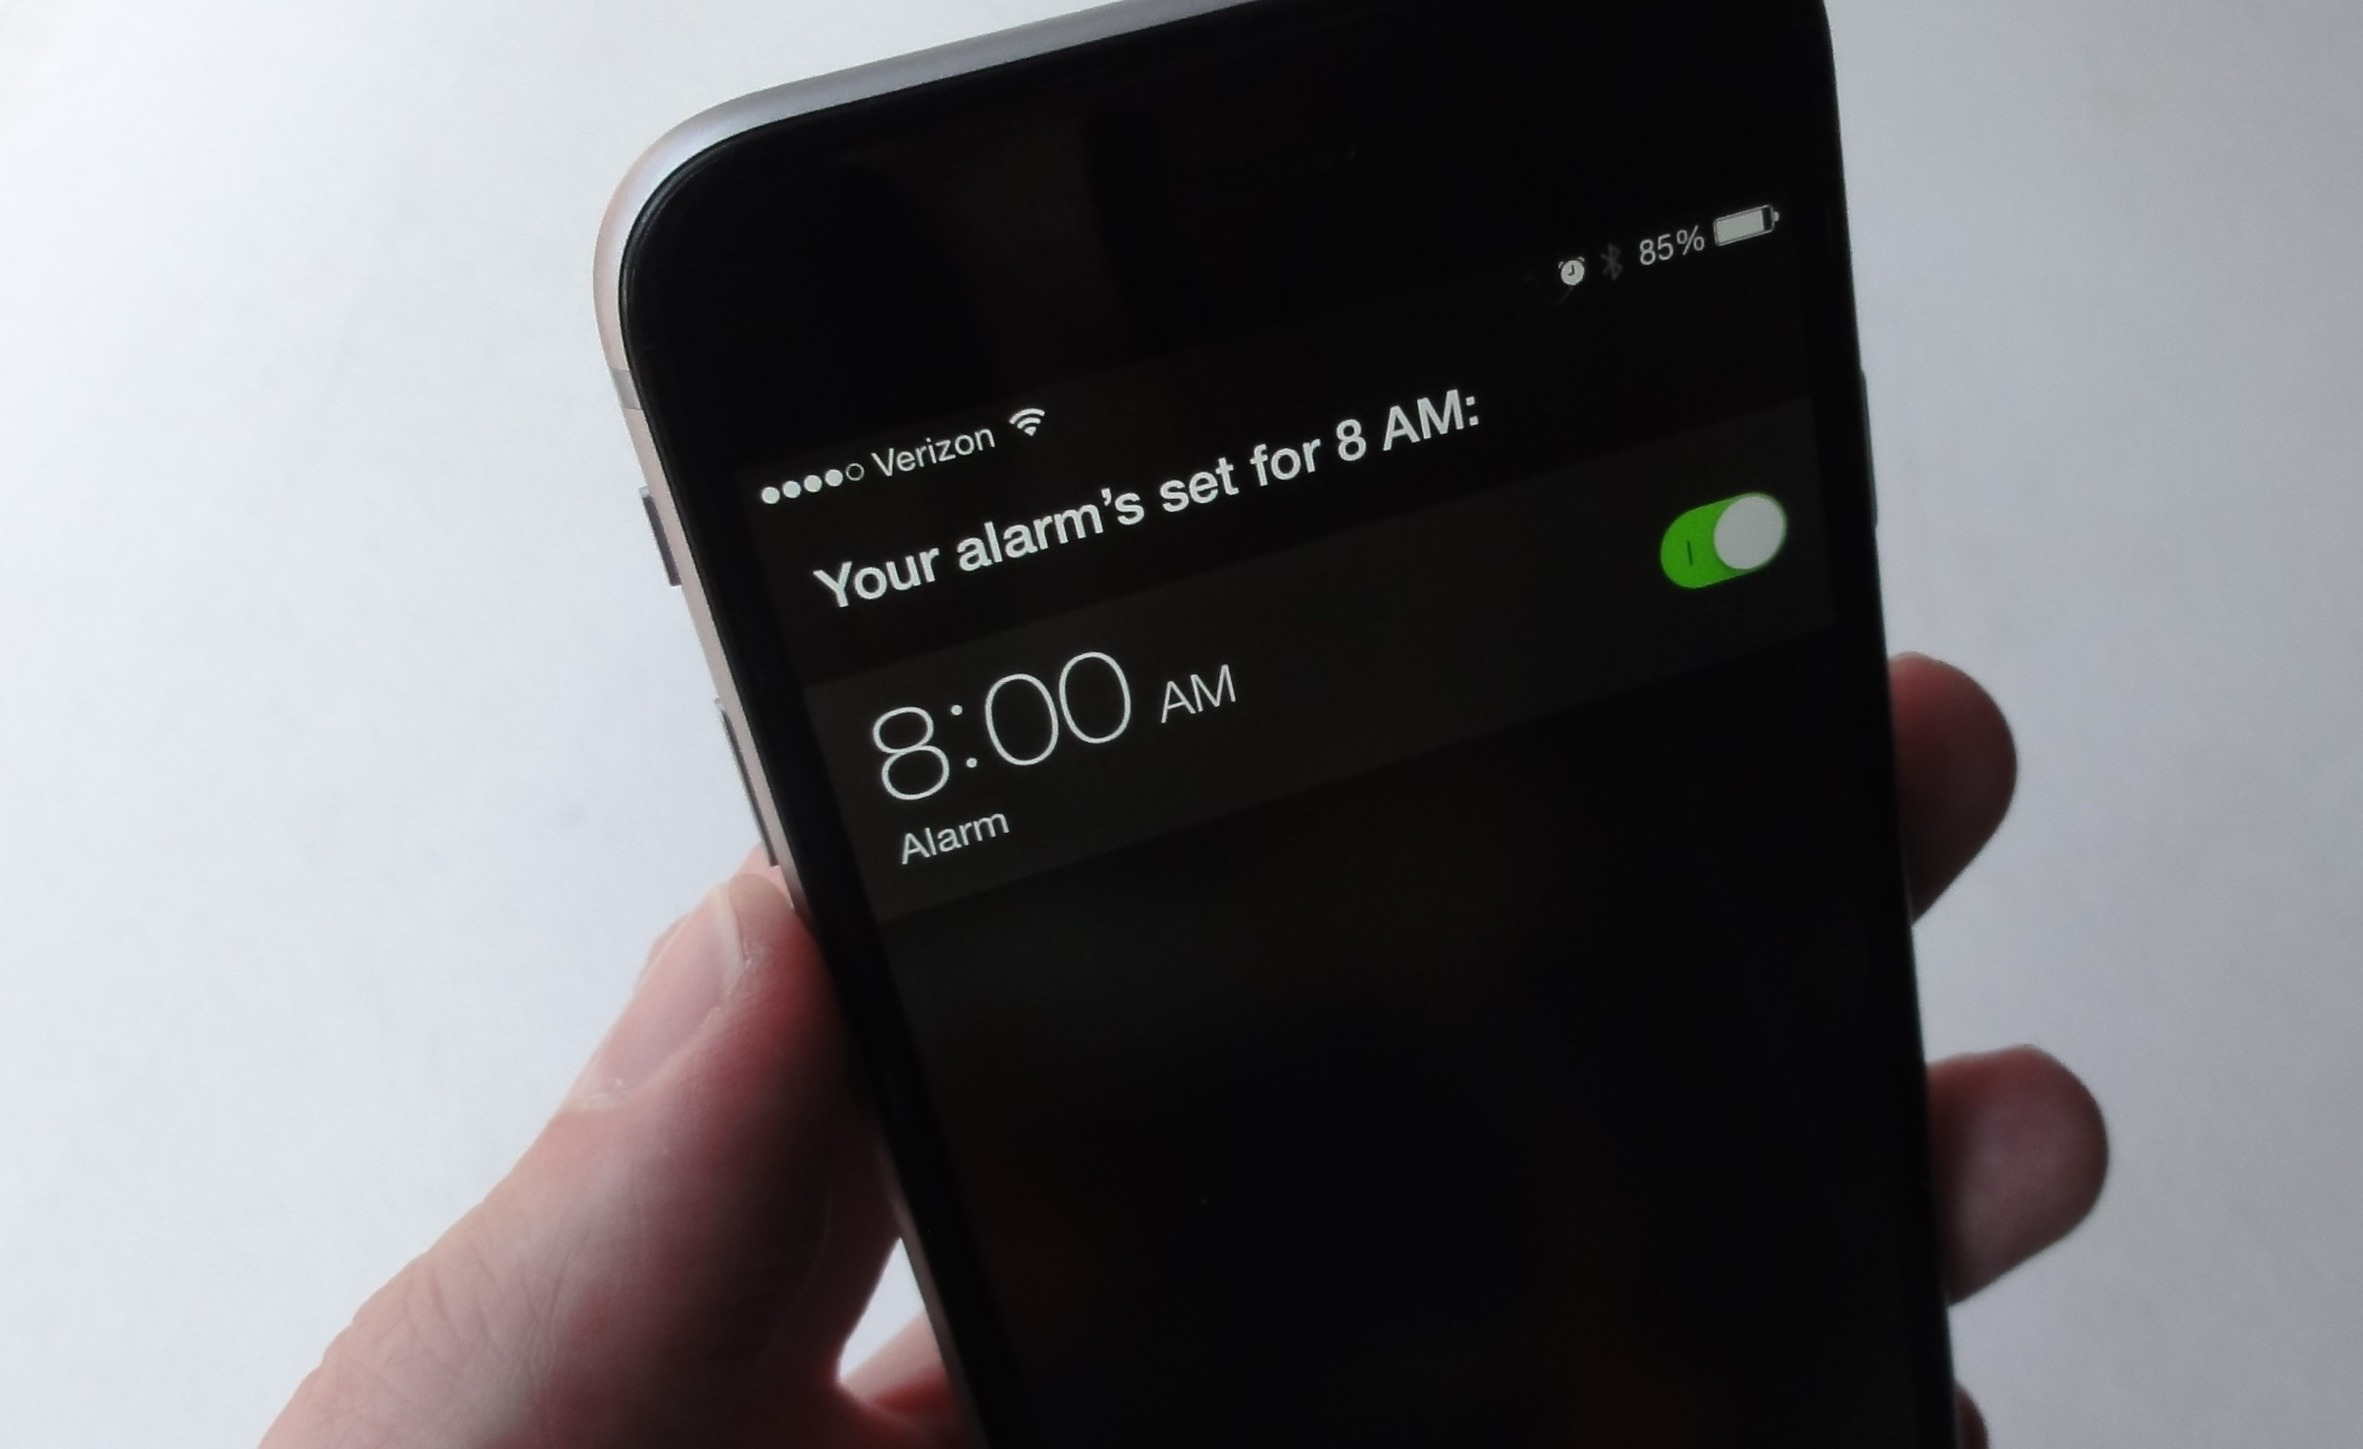 How to Fix iPhone Alarm Not Working on iOS 10+ (Guide)